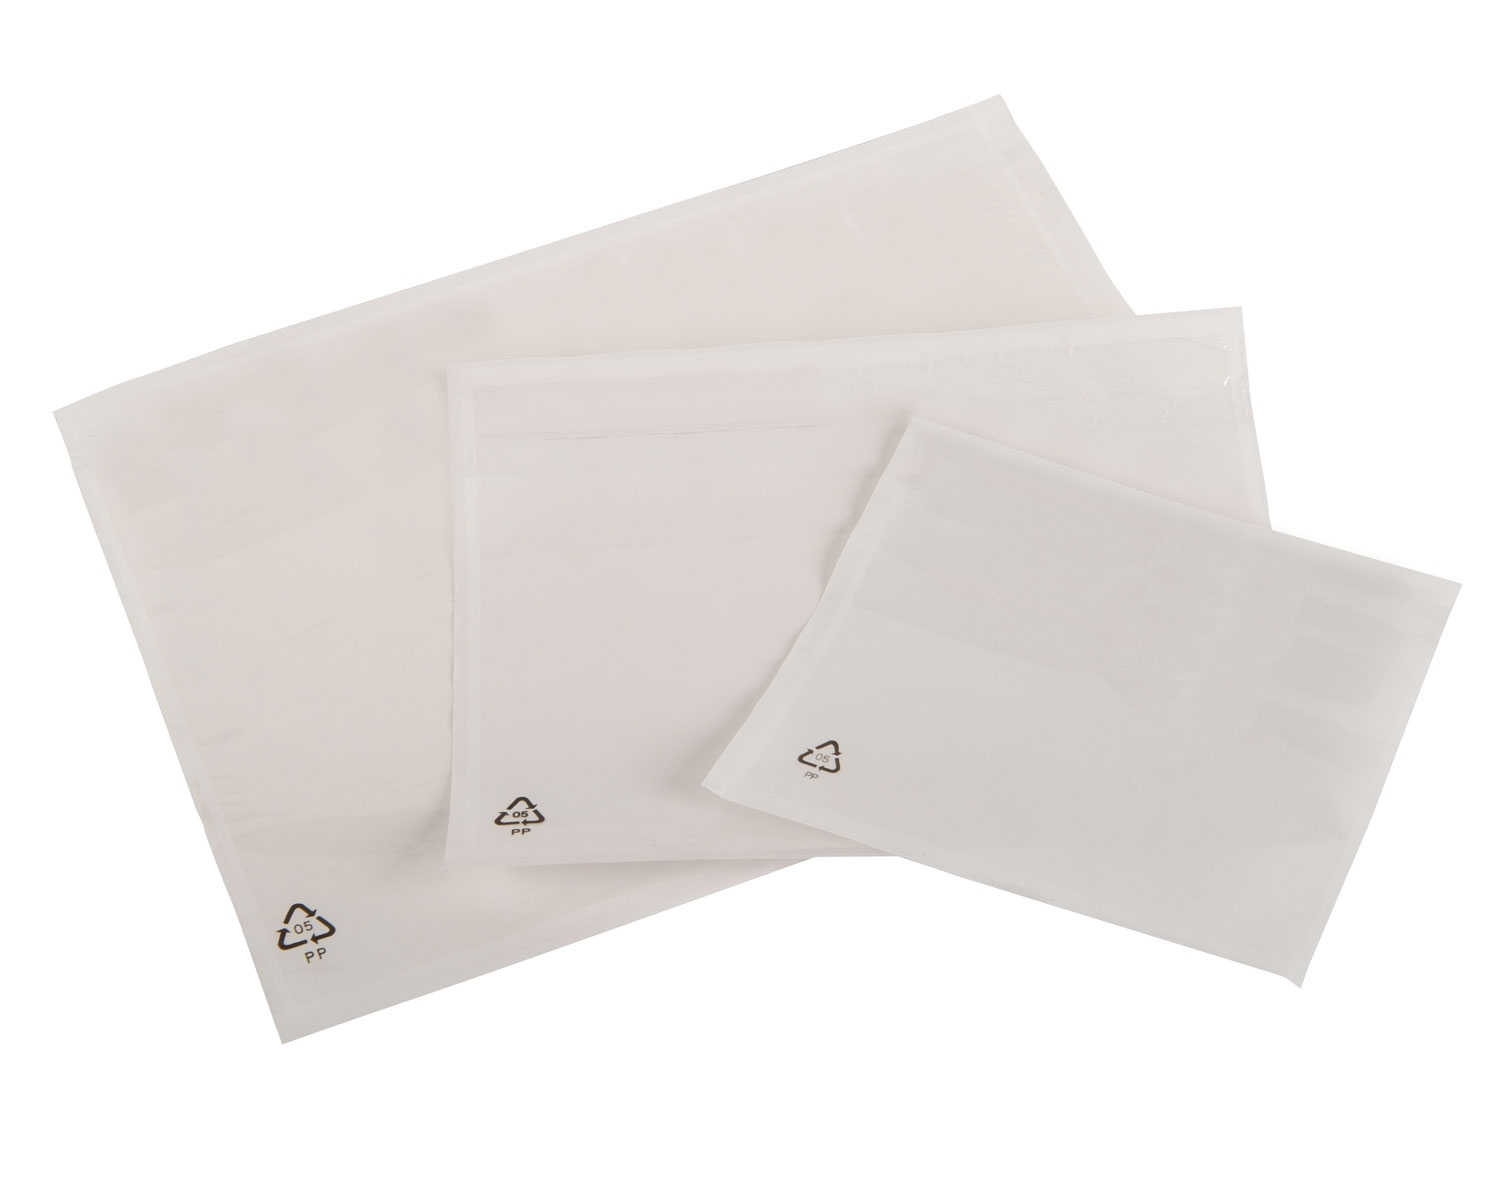 A7 Document Envelopes - Plain